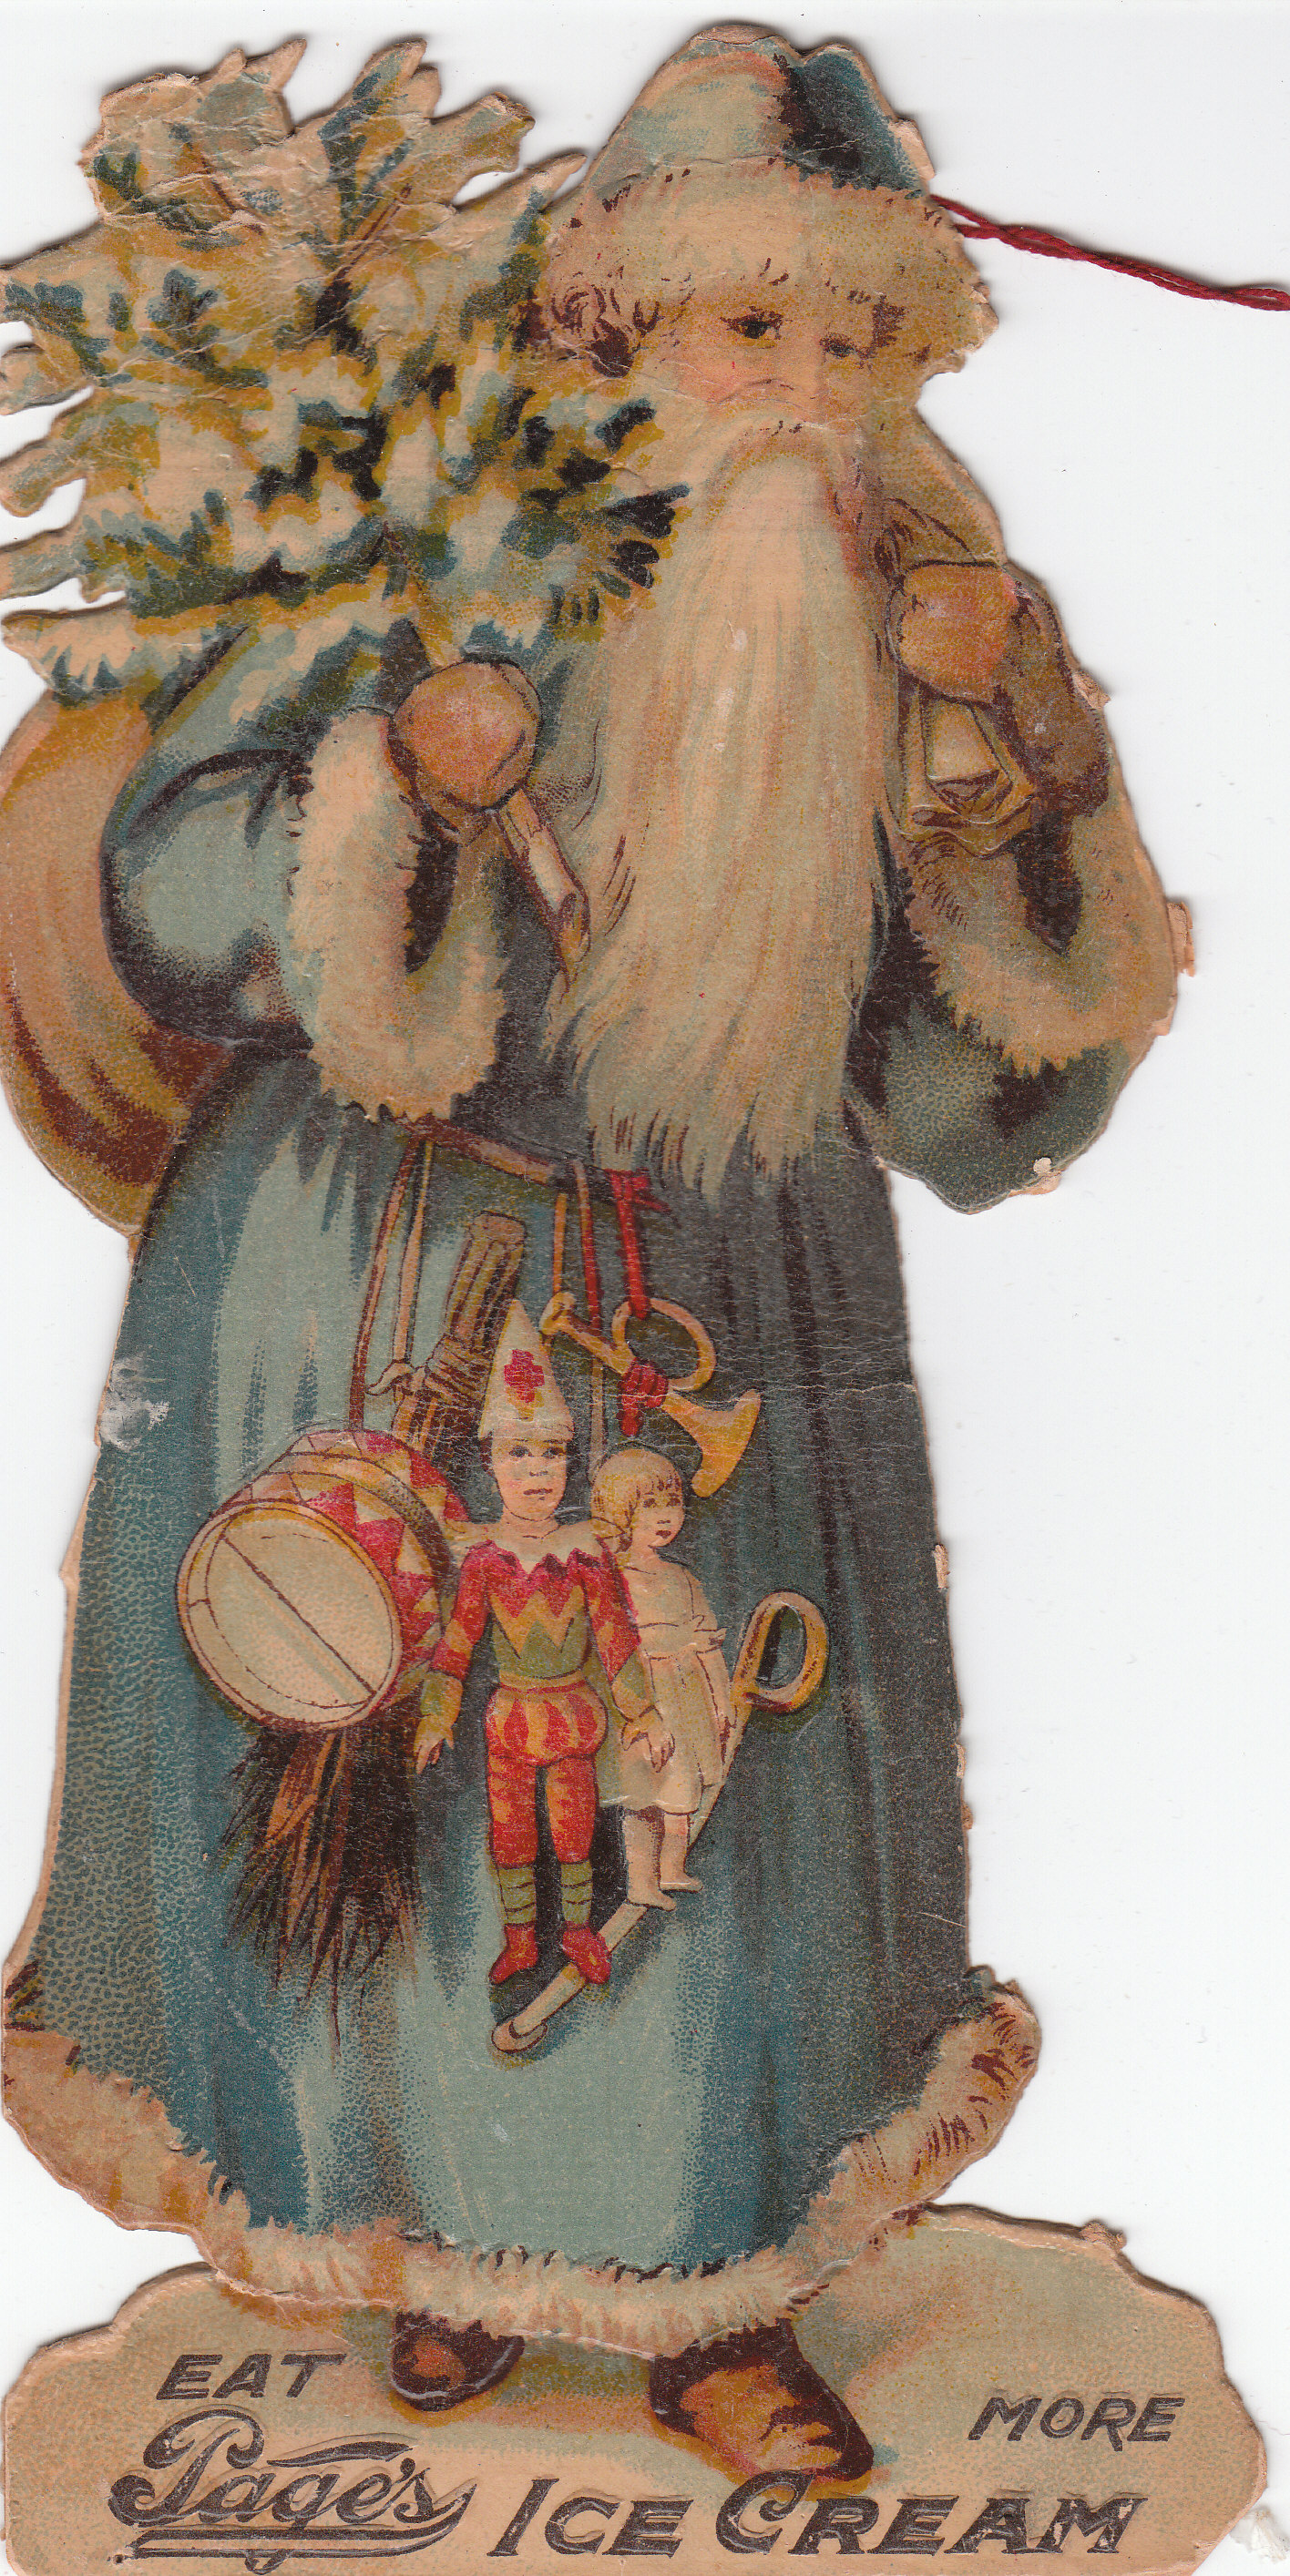 Father Christmas Page's Ice Cream Ornament